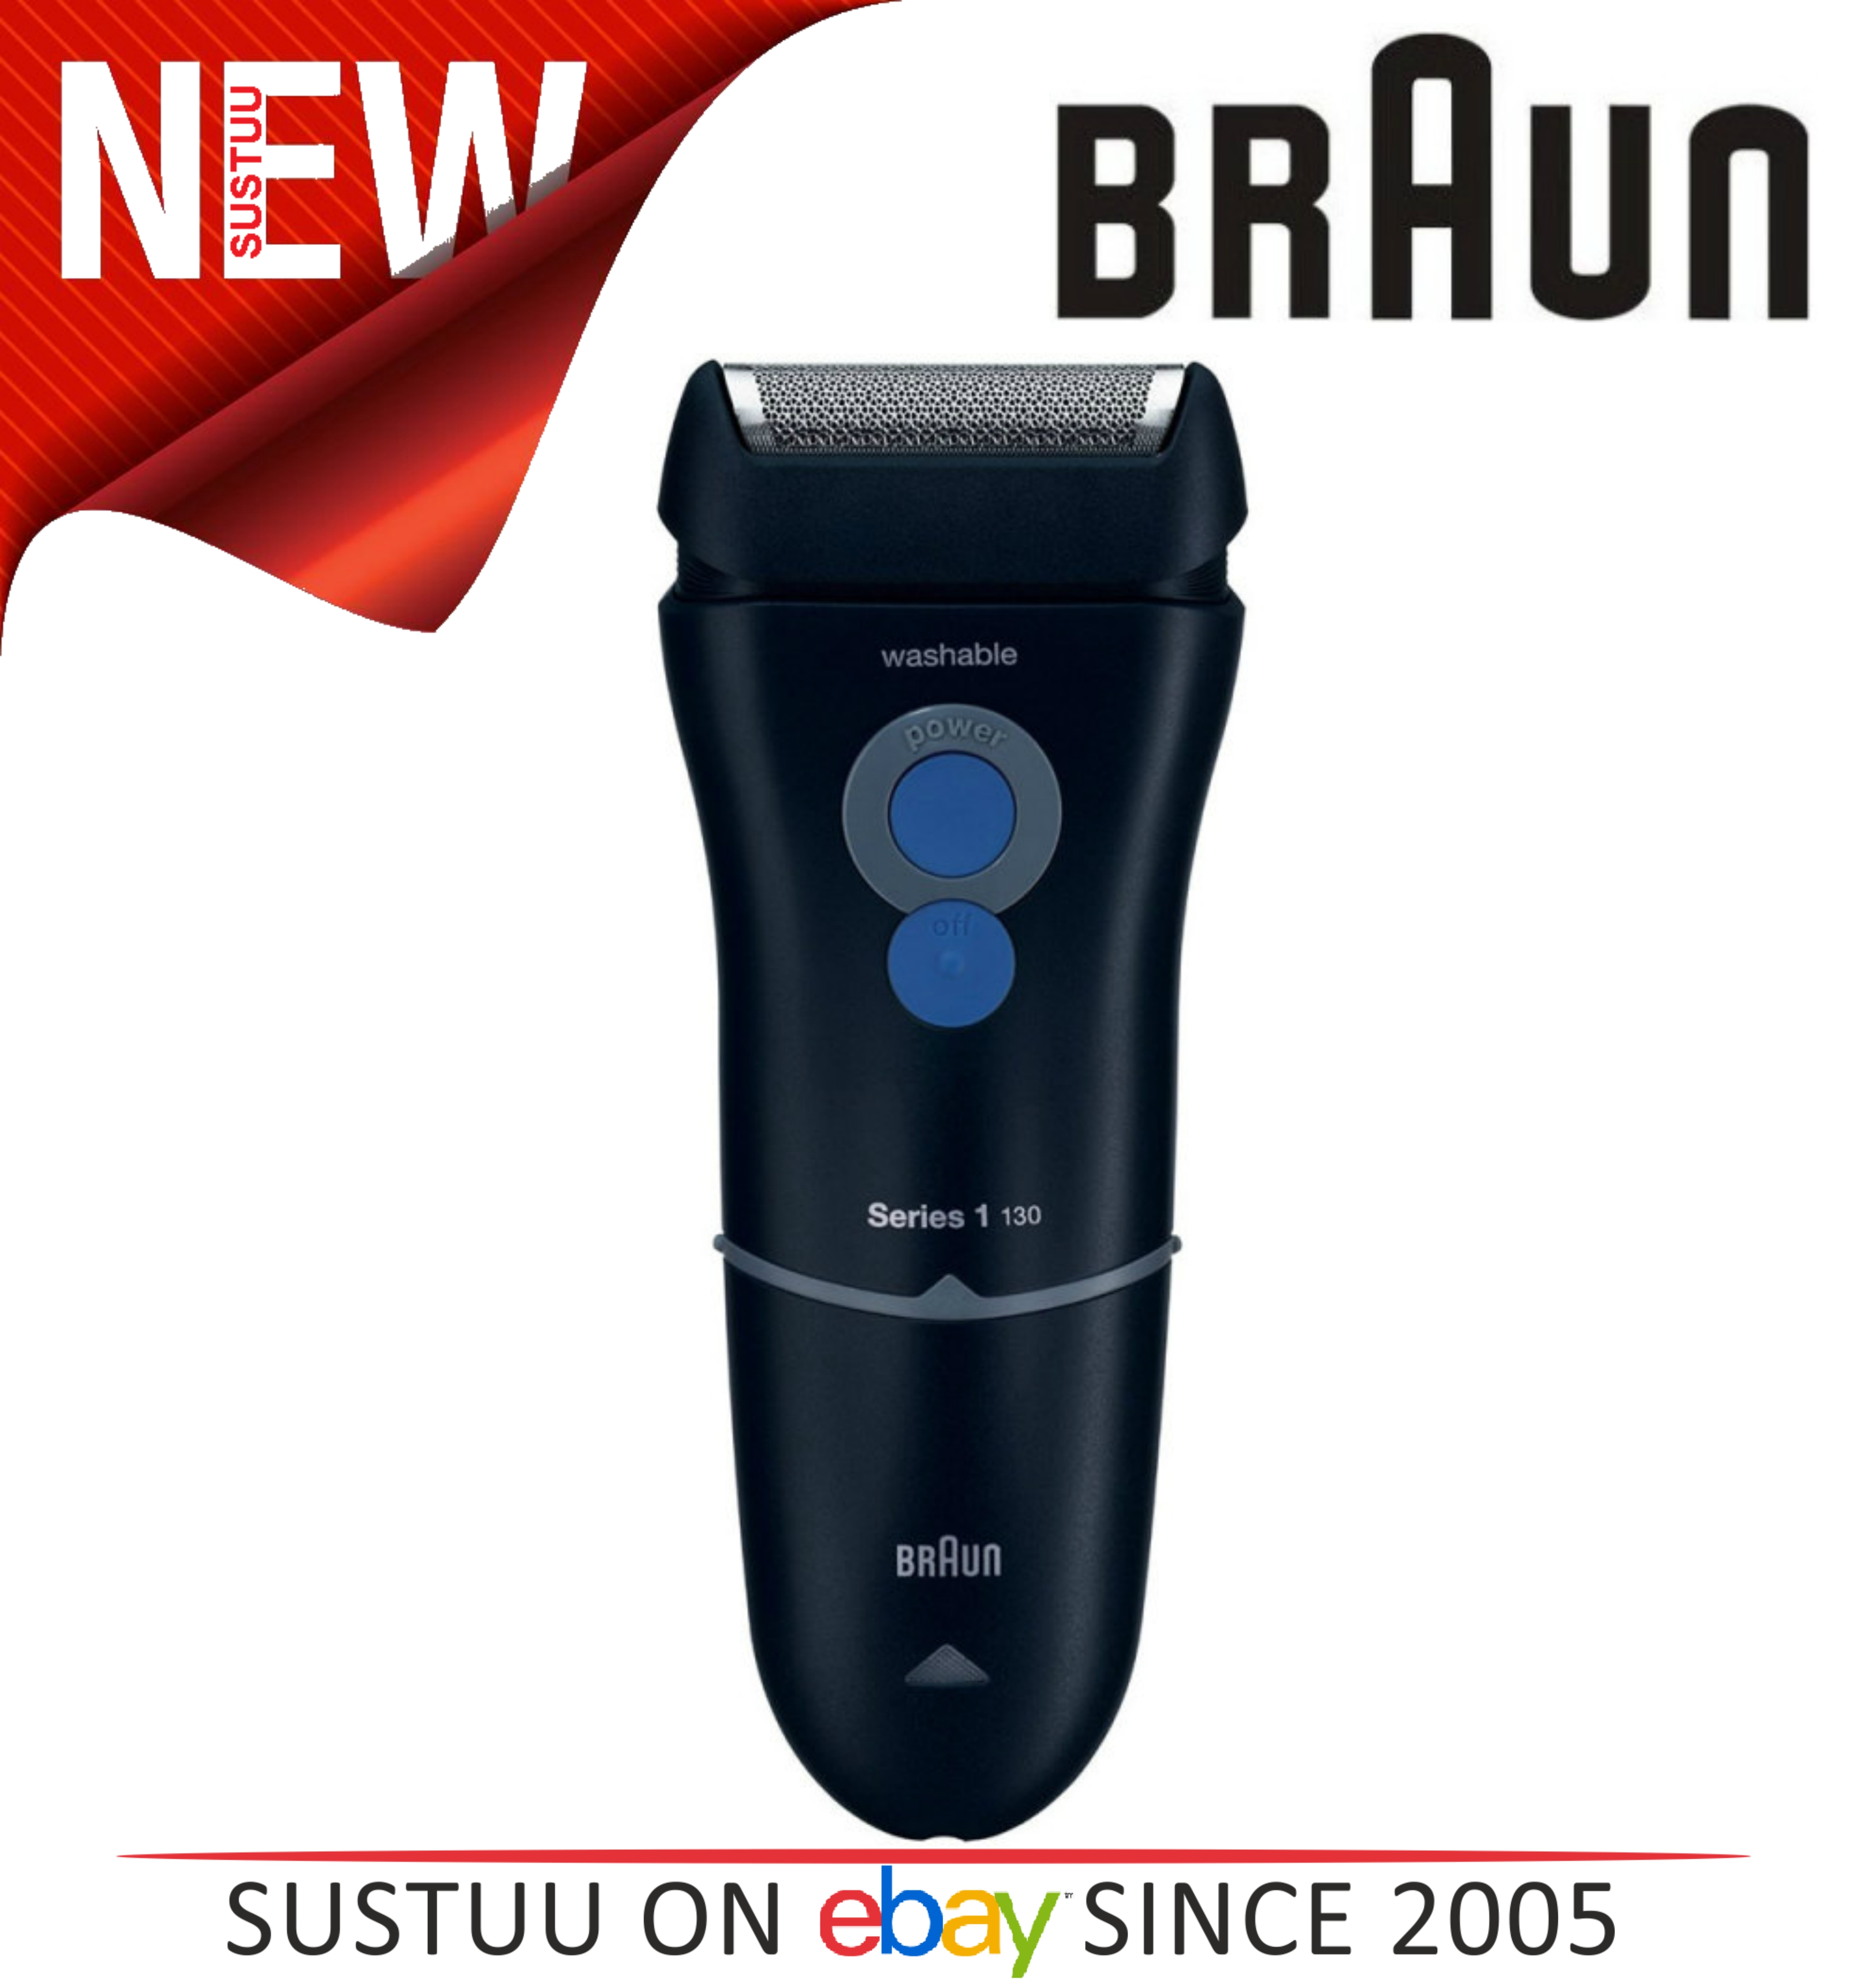 Braun Series 1 130s-1 Mens Electric Mains Washable Trimmer Shaver with SmartFoil